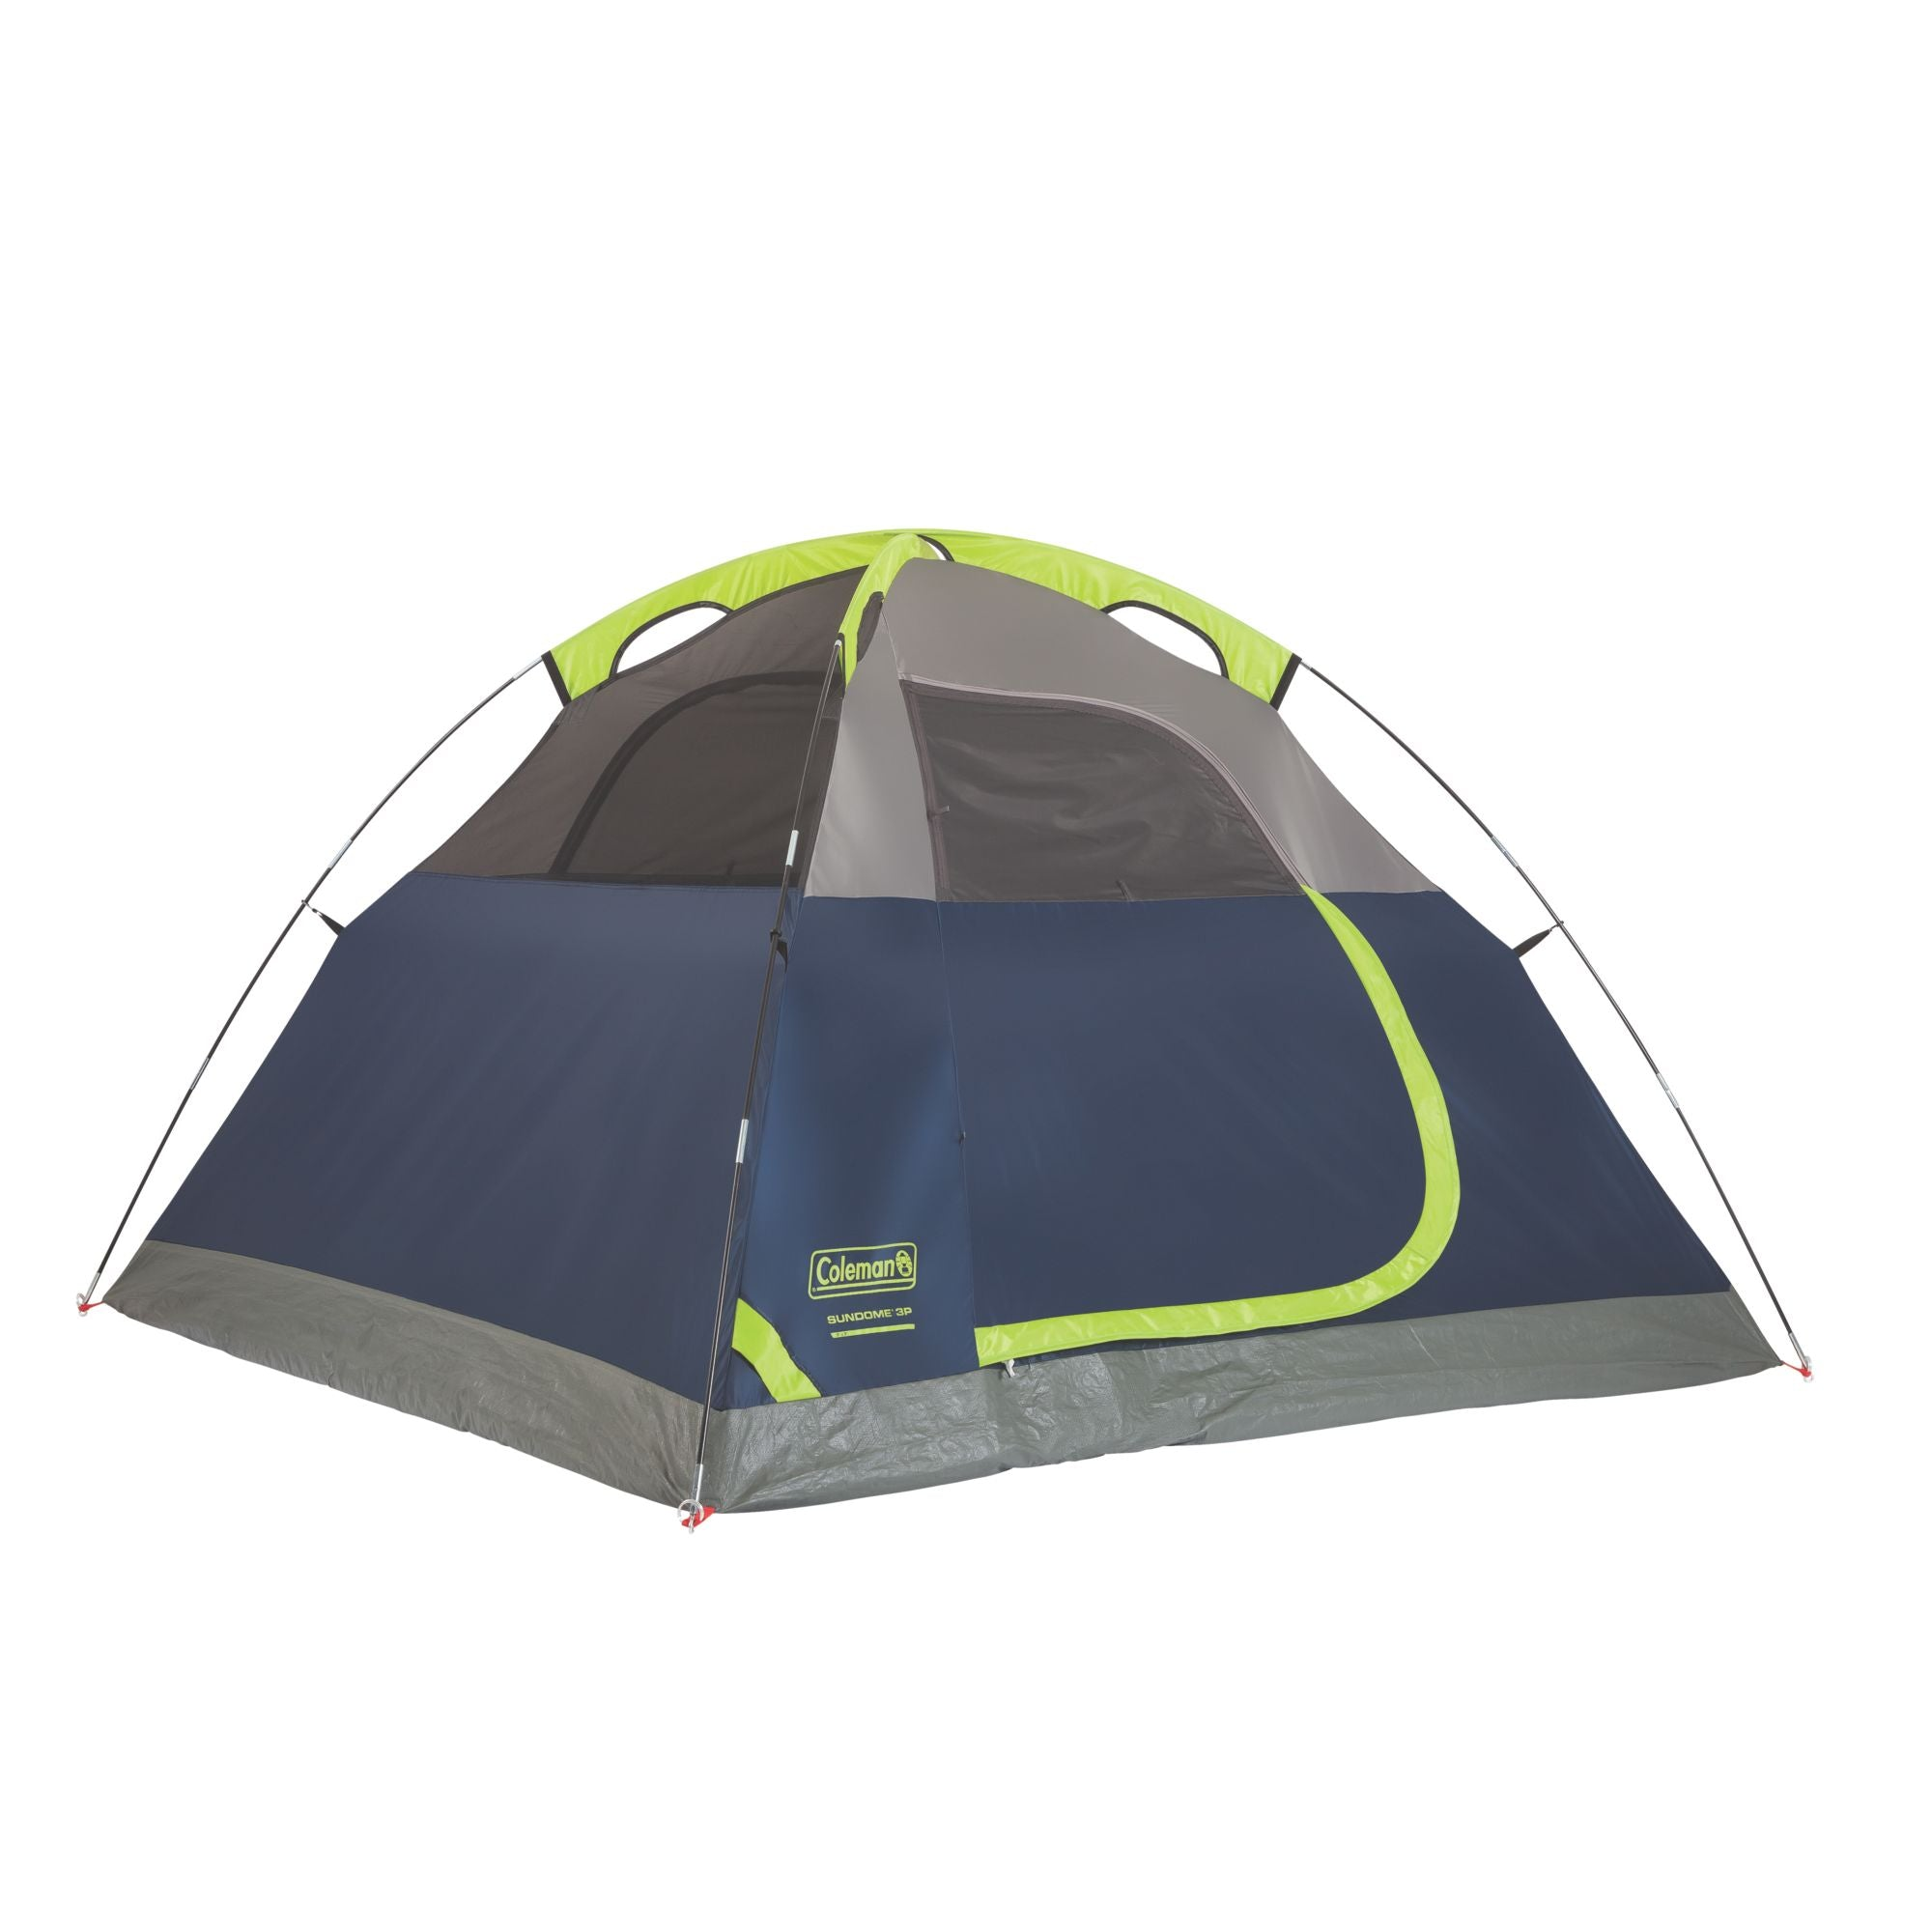 Coleman Sundome 3 Person Dome Tent 7x7 ft Blue/Green  sc 1 st  Off Trail Gear : coleman 1 minute tent - afamca.org